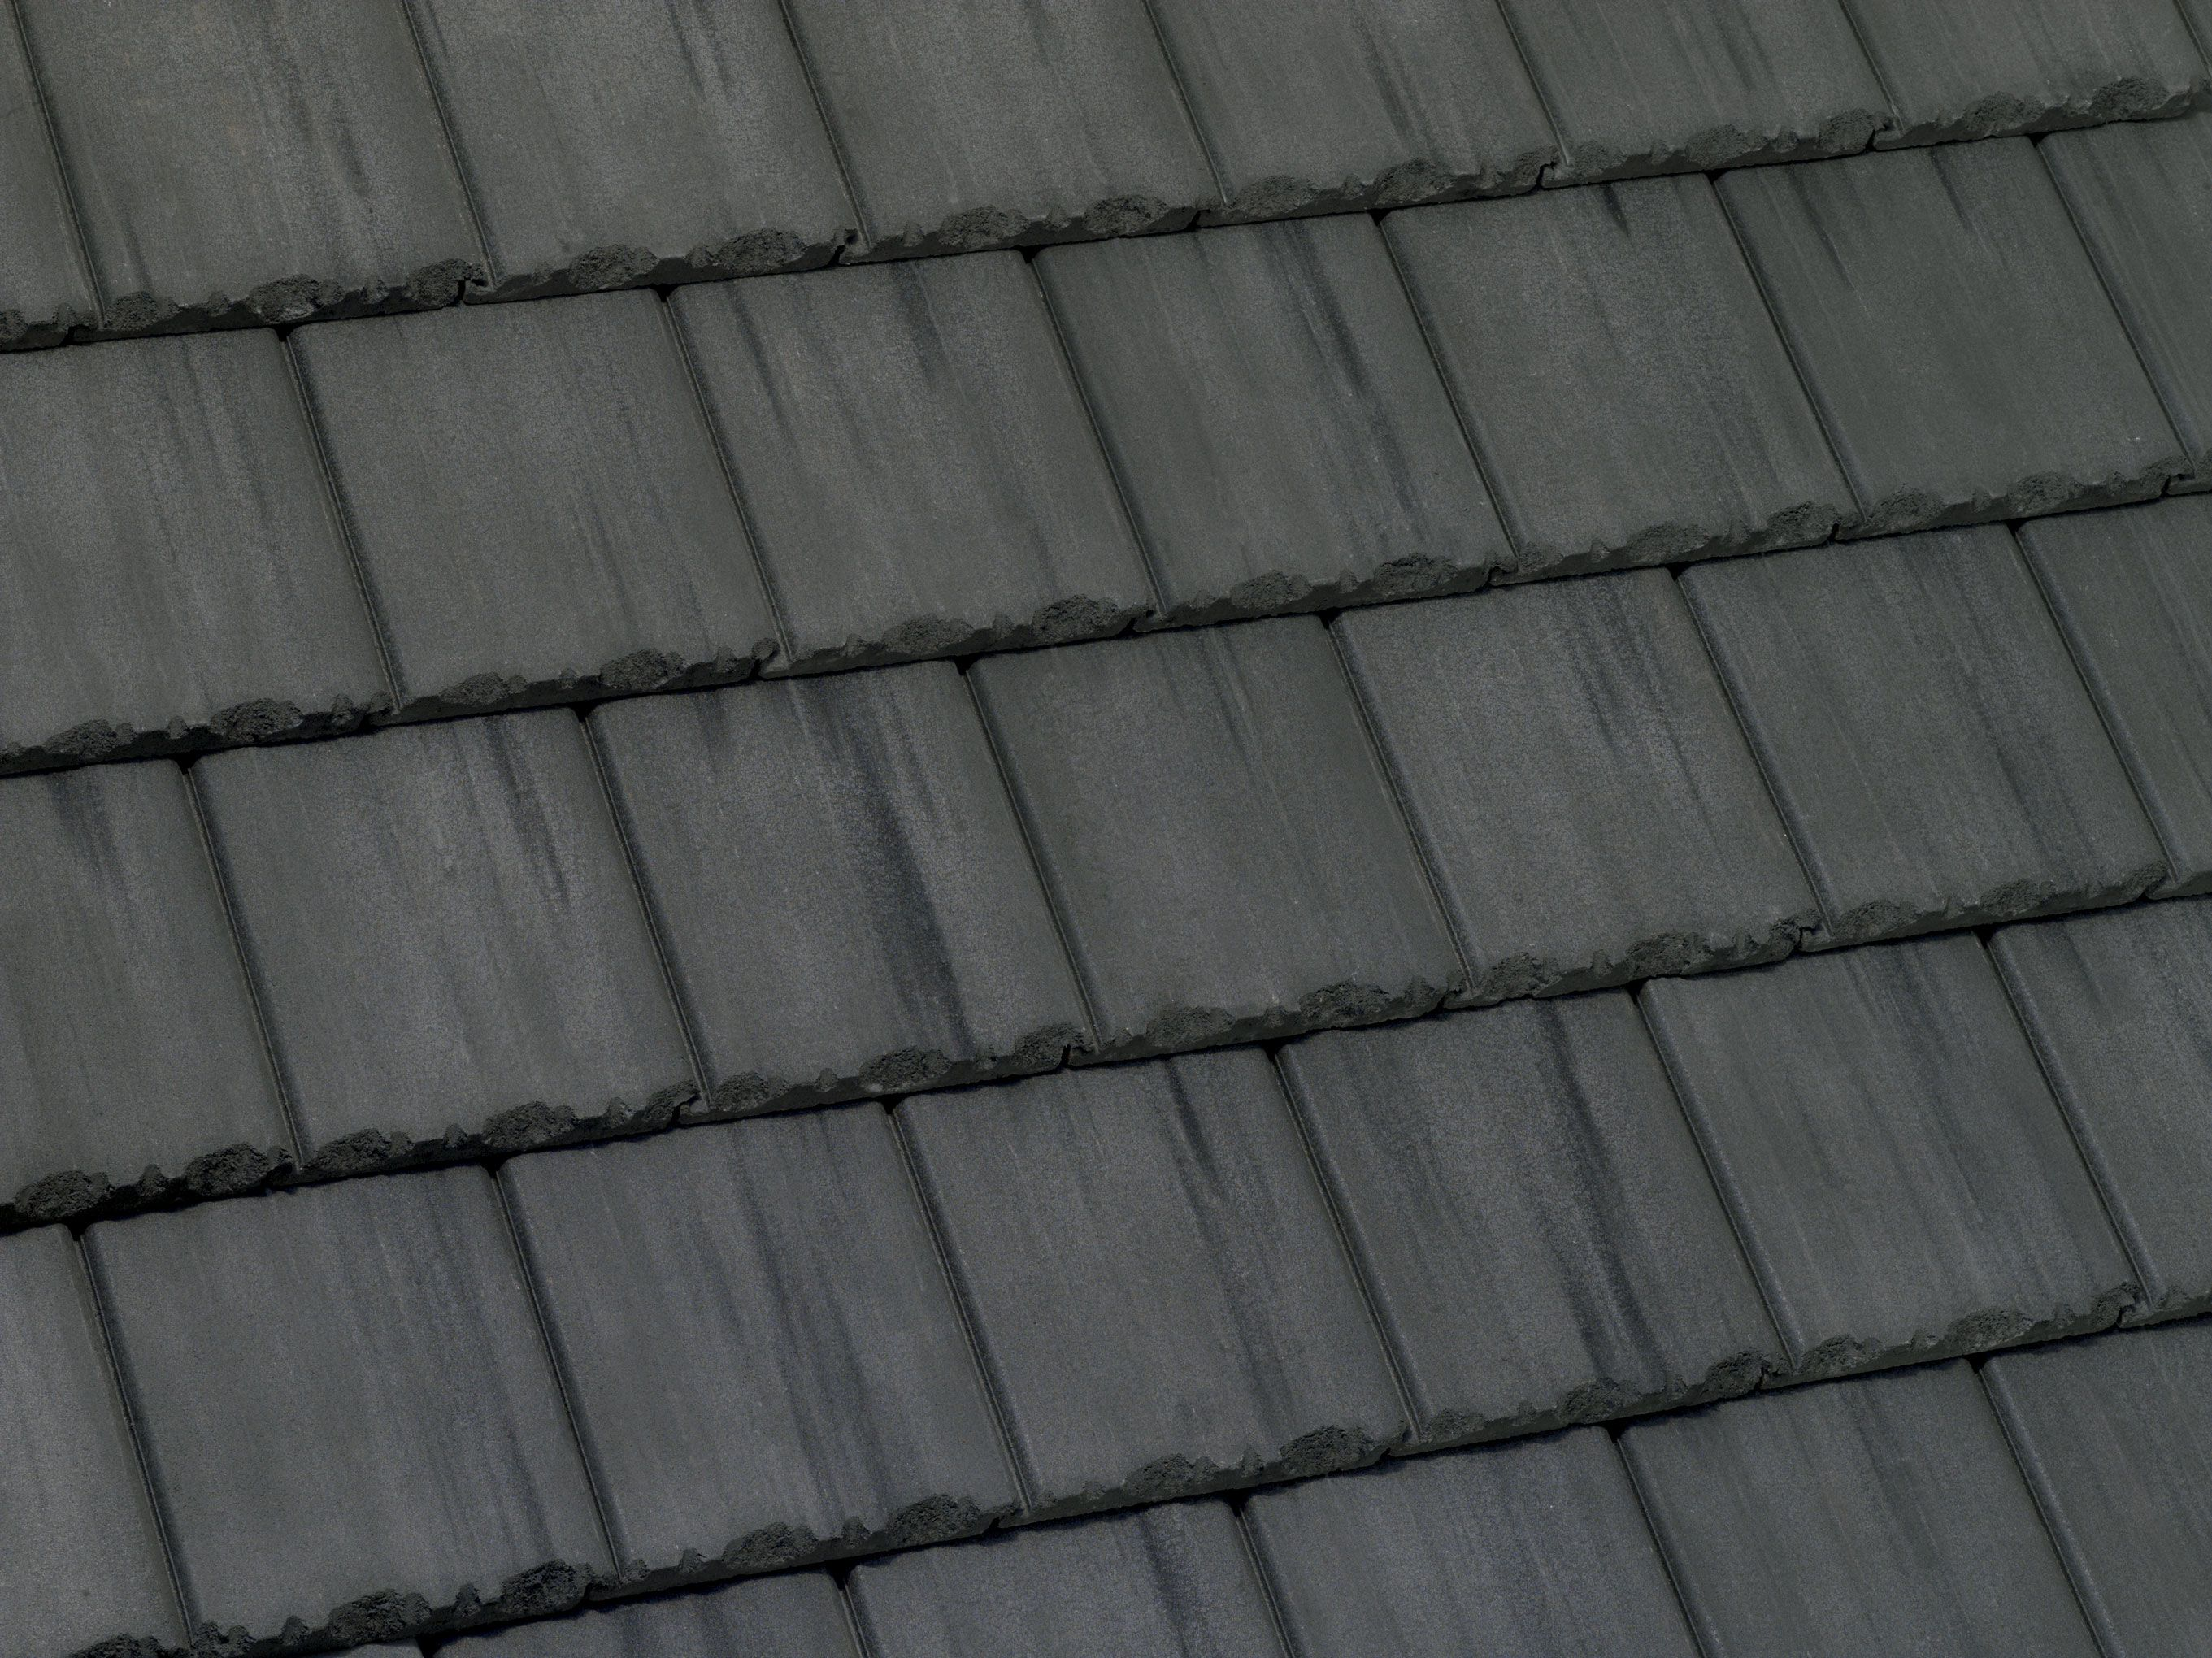 49595 Tapered Slate Dark Charcoal Roof Paint Concrete Roof Tiles Roofing Felt